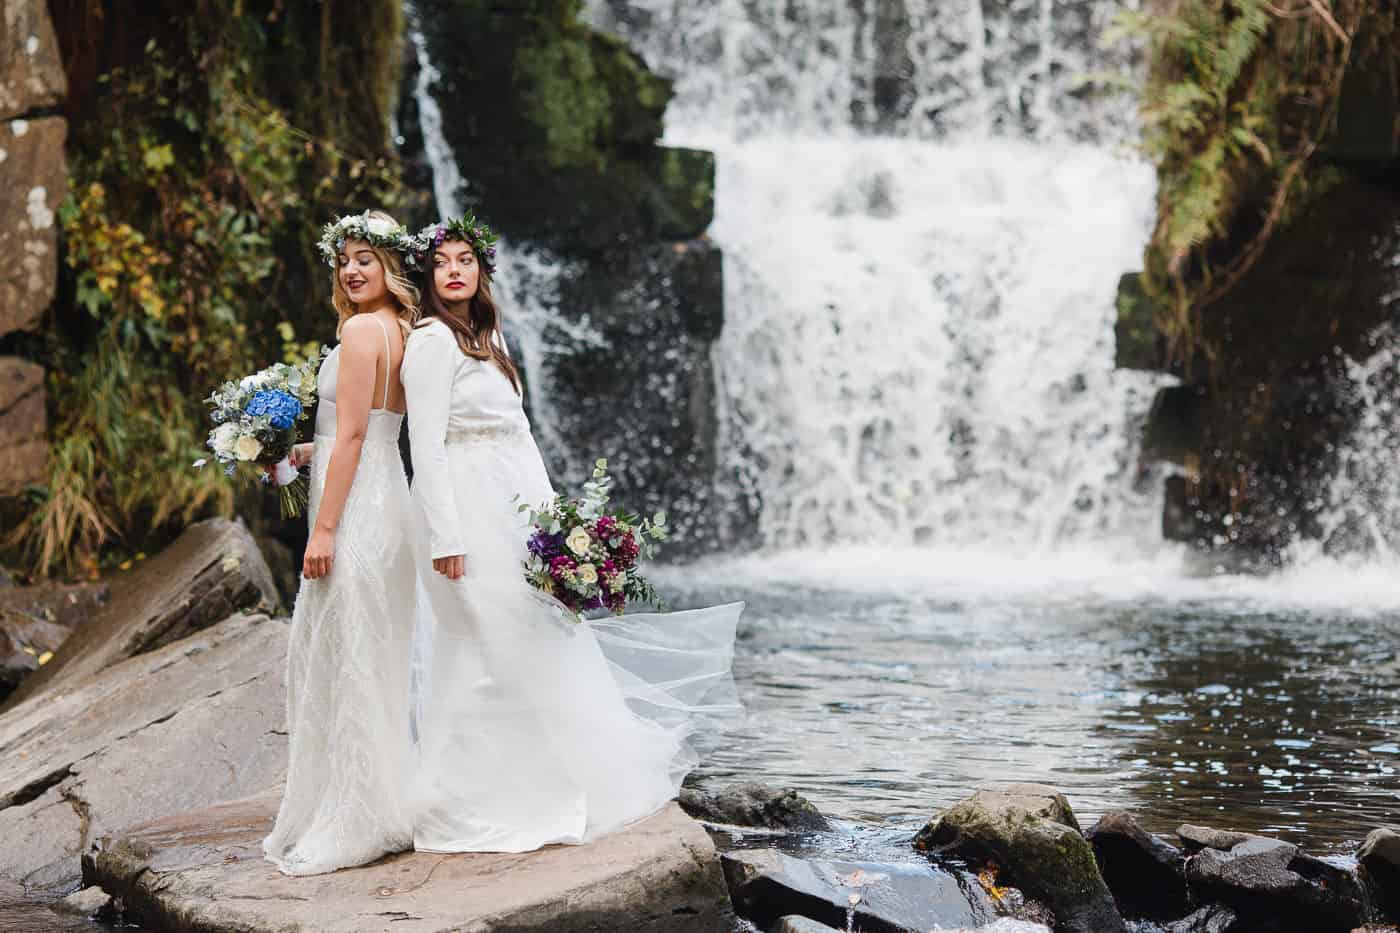 Two models stood on rock in front of waterfall